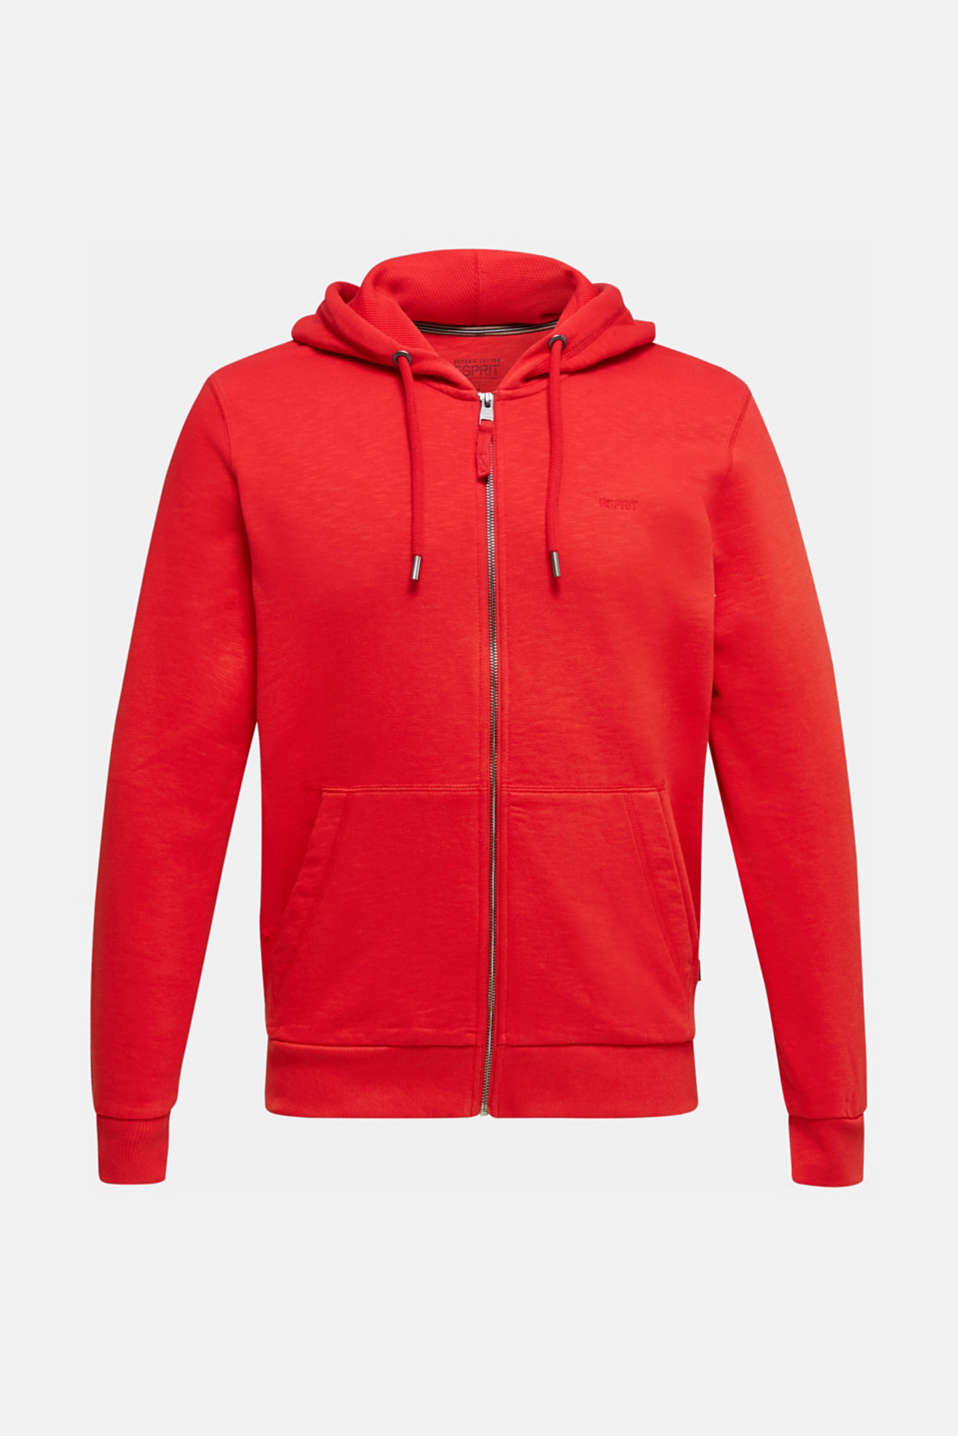 Sweatshirt cardigan with hood, 100% cotton, RED, detail image number 7